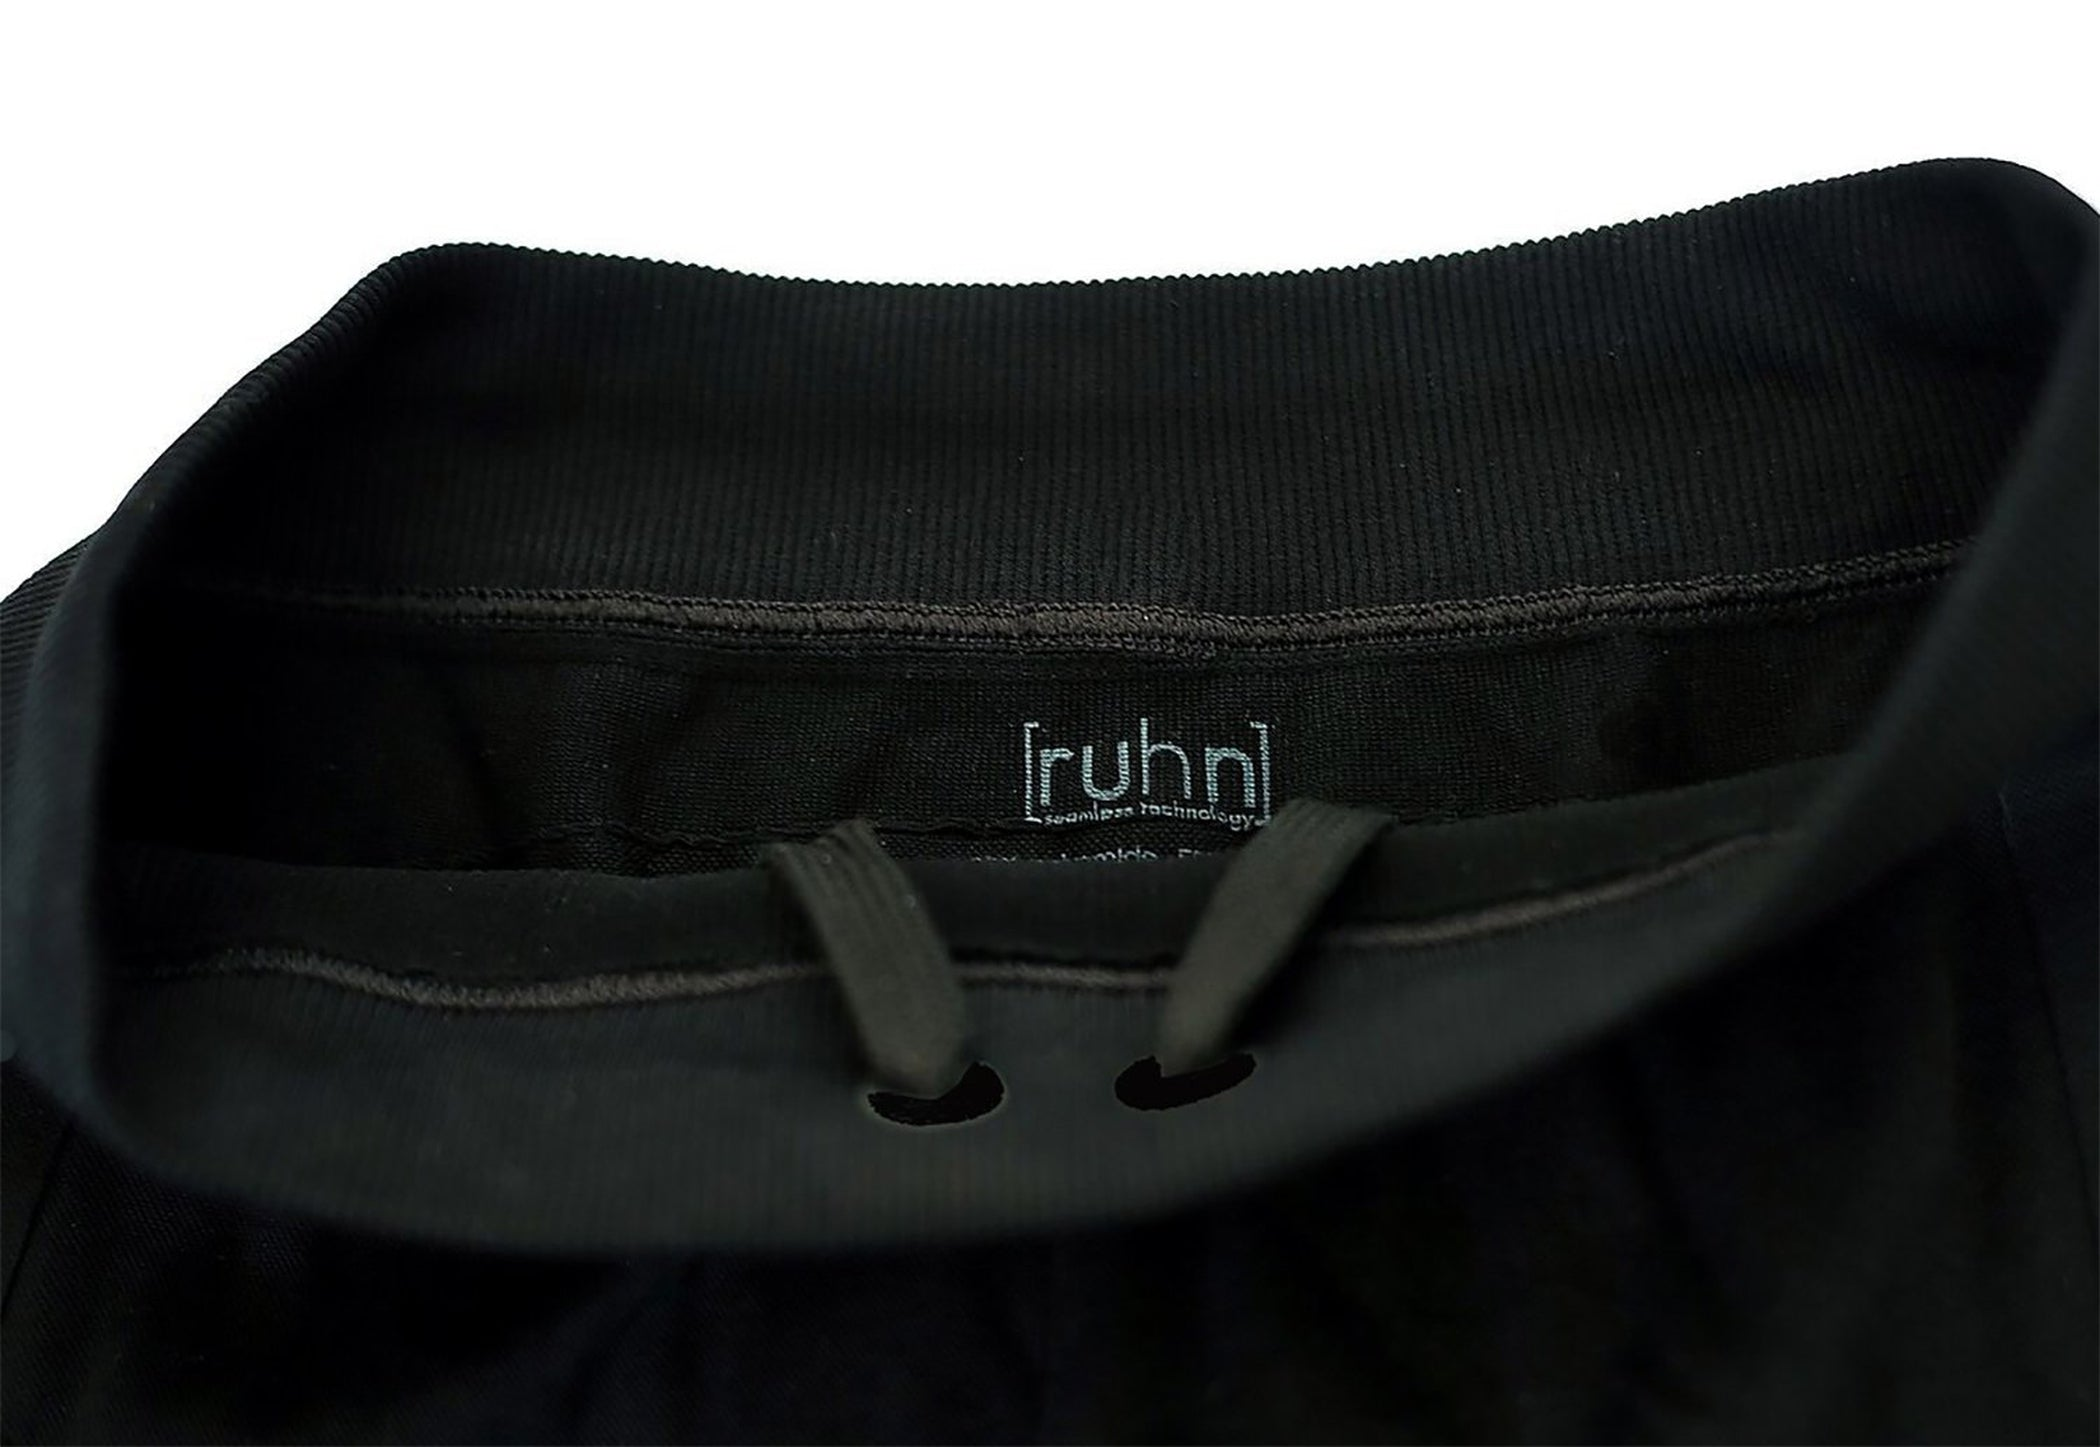 Black compression shorts with patented fully seamless front, pockets and 6 inch inseam. Drawstring.